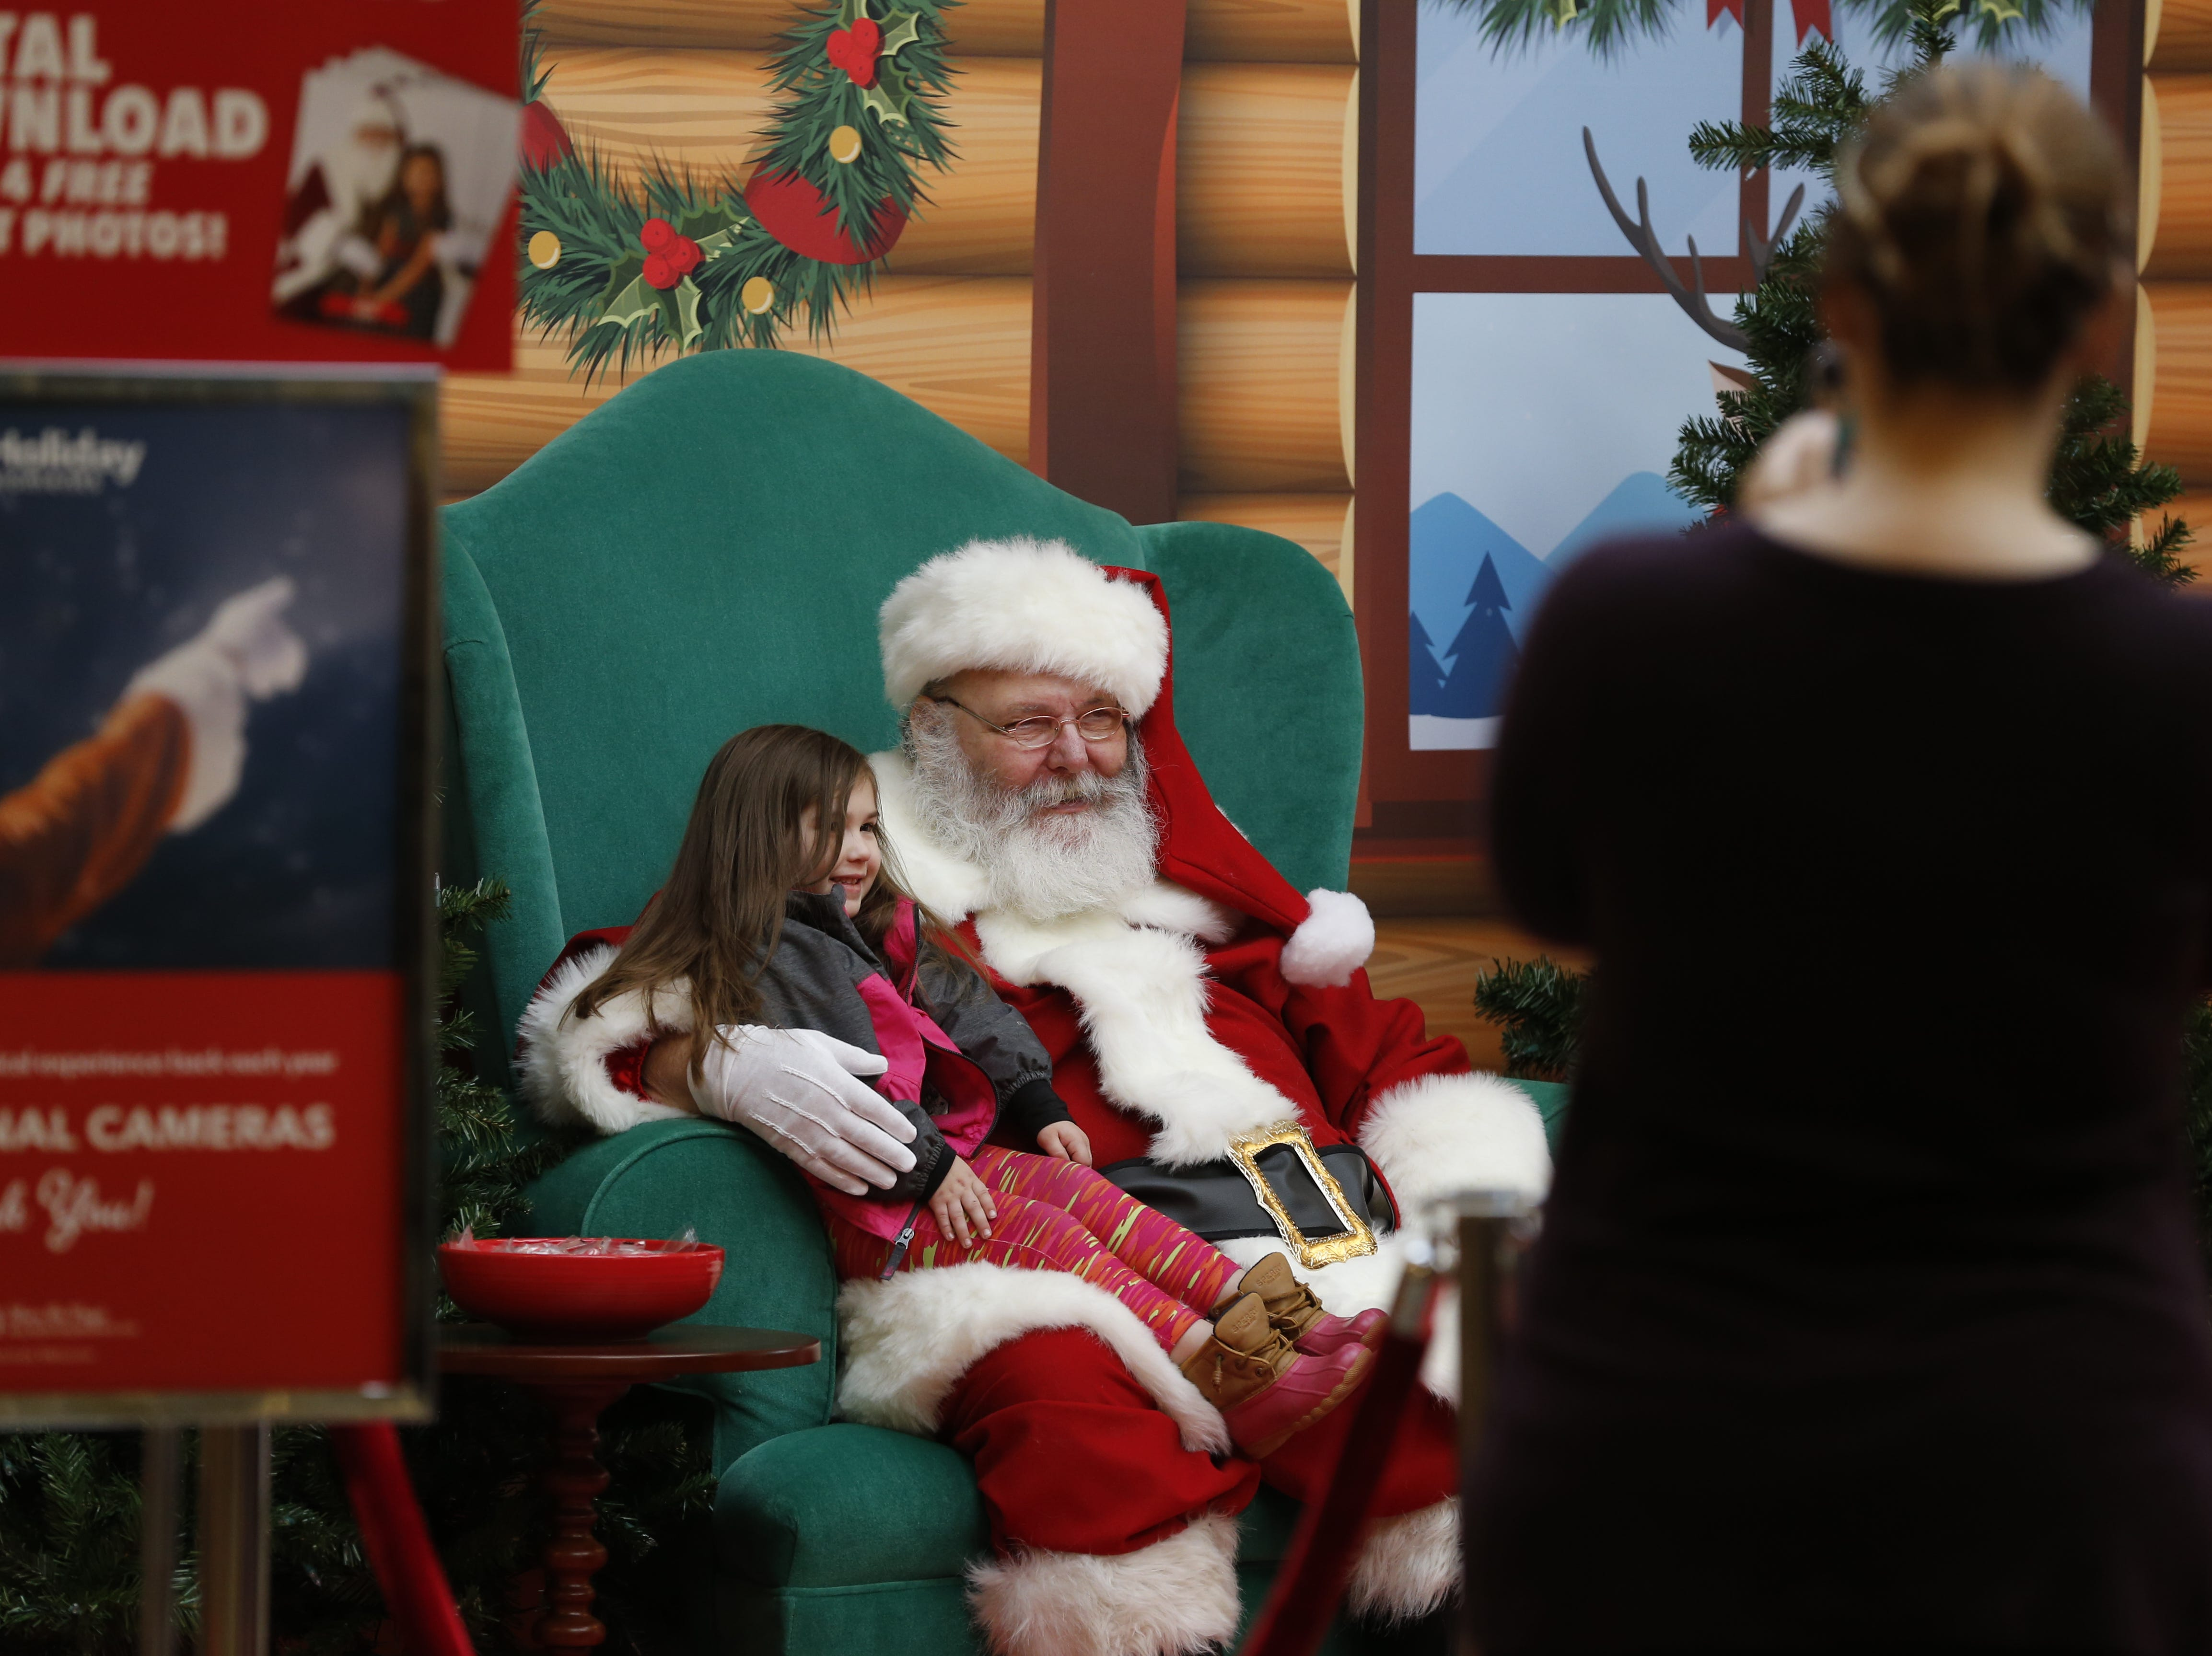 Santa Clause poses with one of the first kids to come see him at the new Santa's Village area at the Richmond Mall on Friday, Nov. 23, 2018.